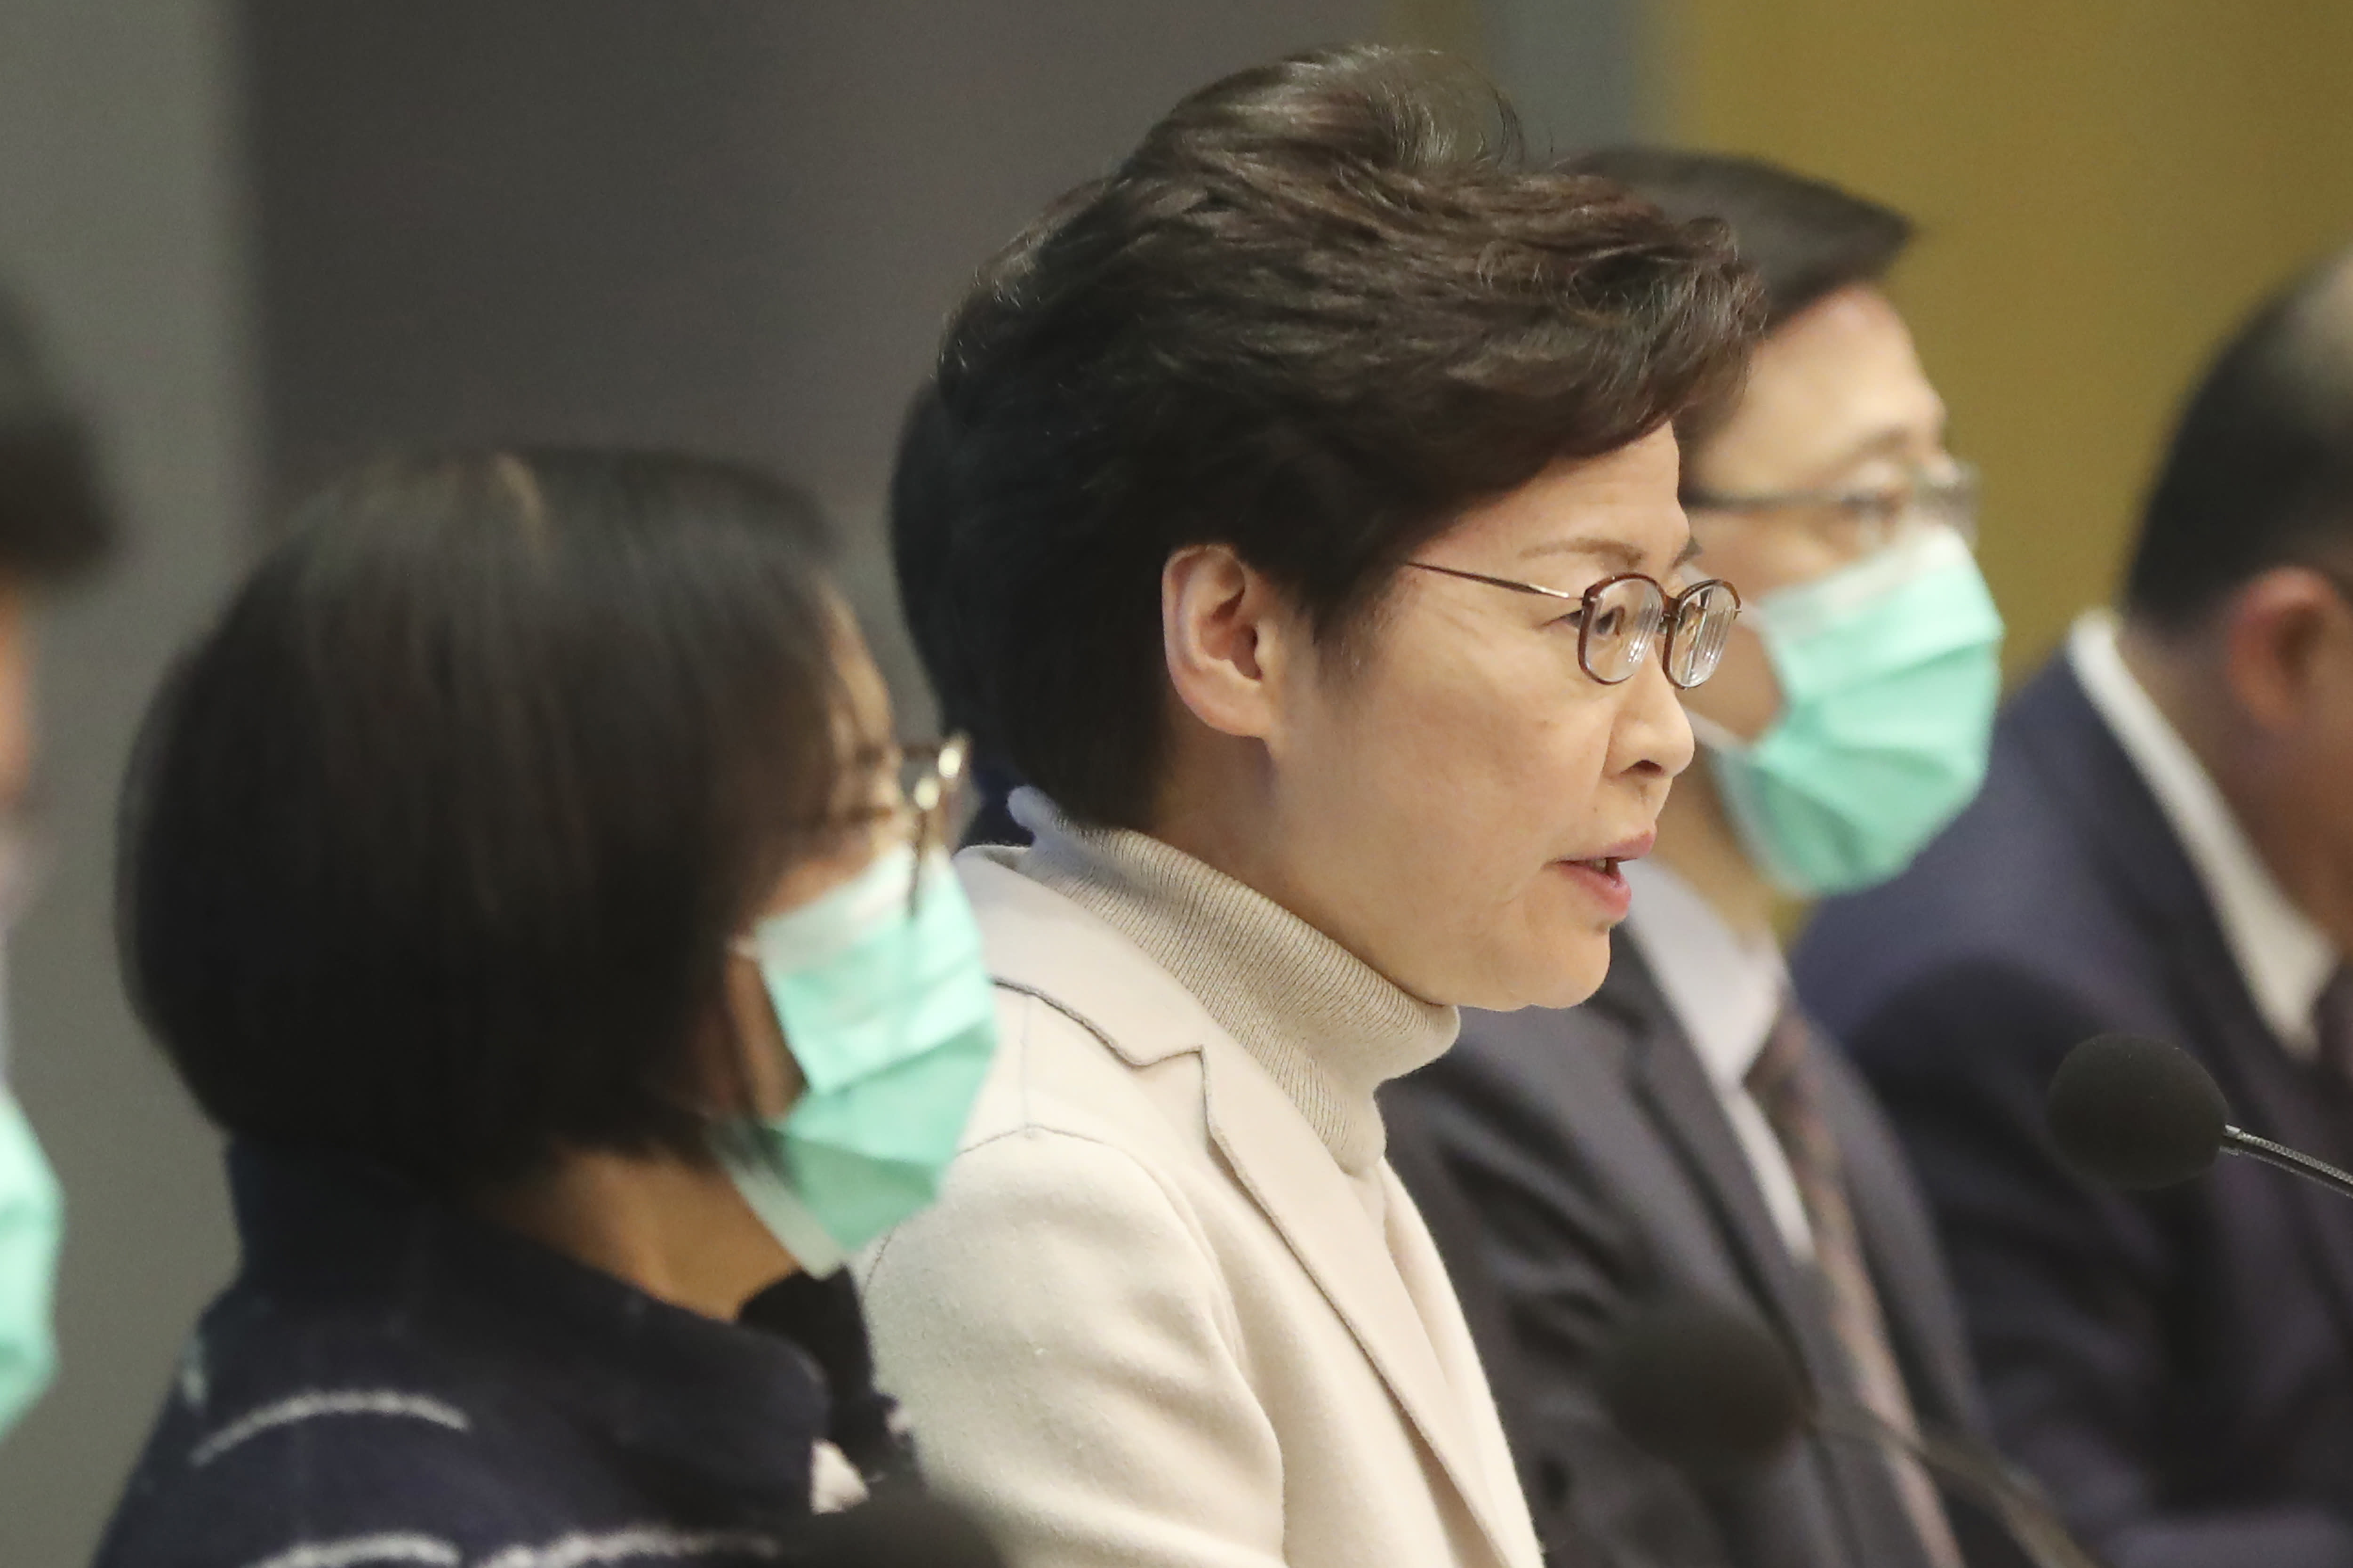 490 dead, 24,324 cases of coronavirus confirmed on Chinese mainland